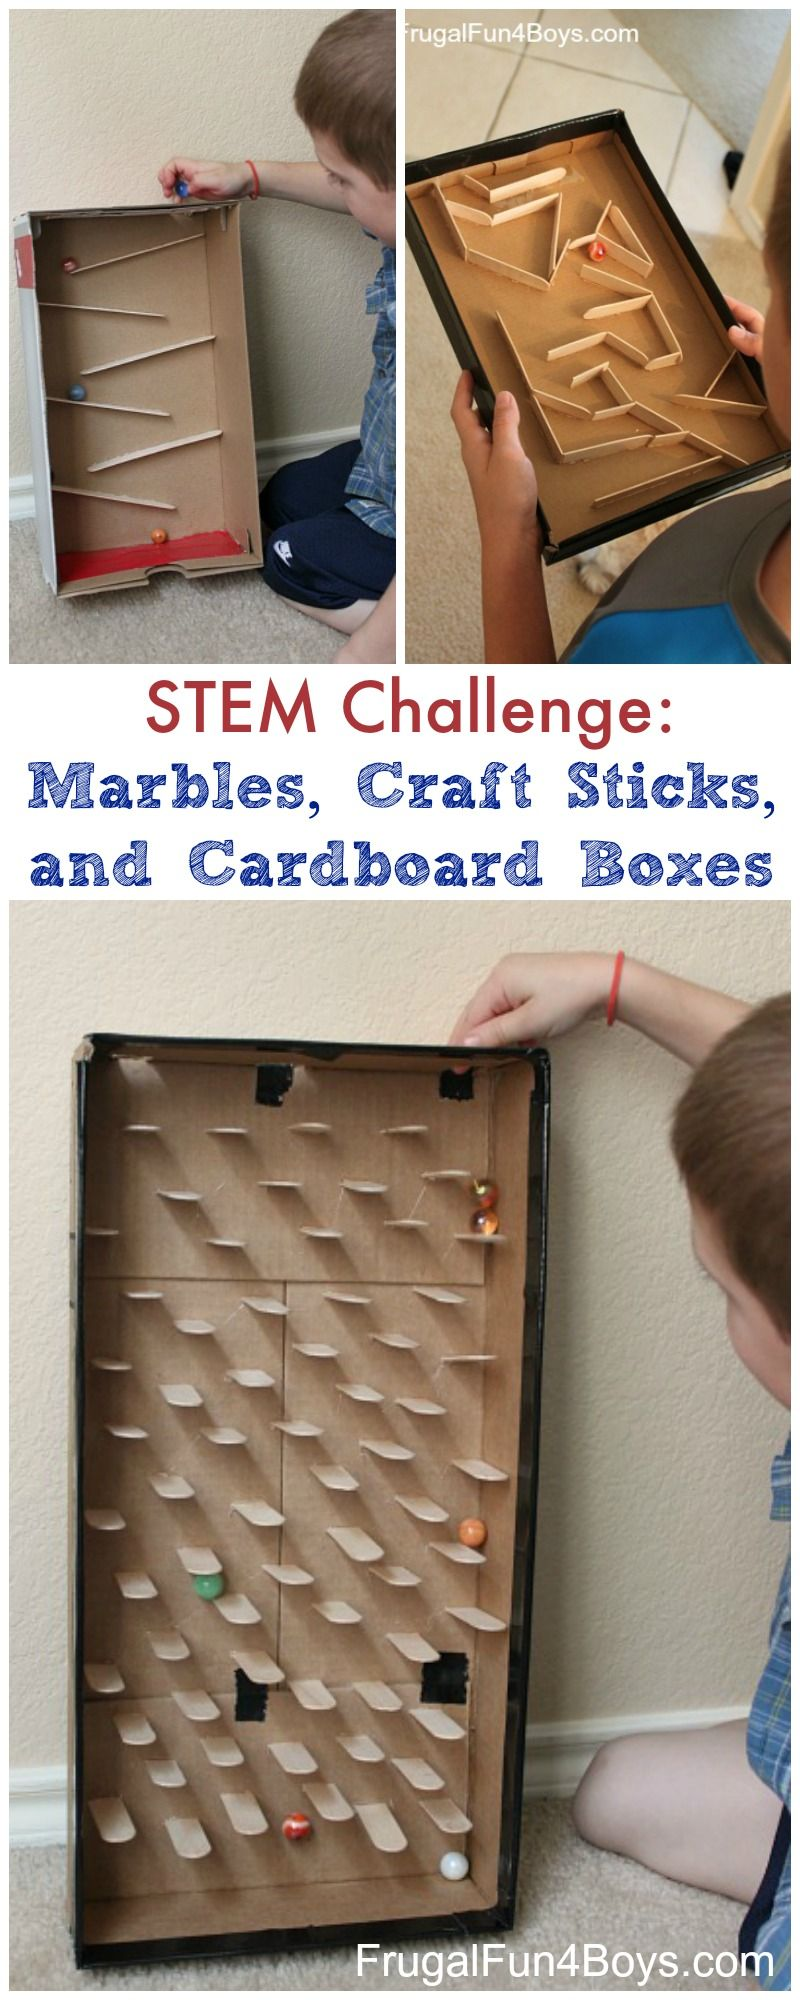 STEM Challenge: Marbles, Craft Sticks, and Cardboard Boxes #boys